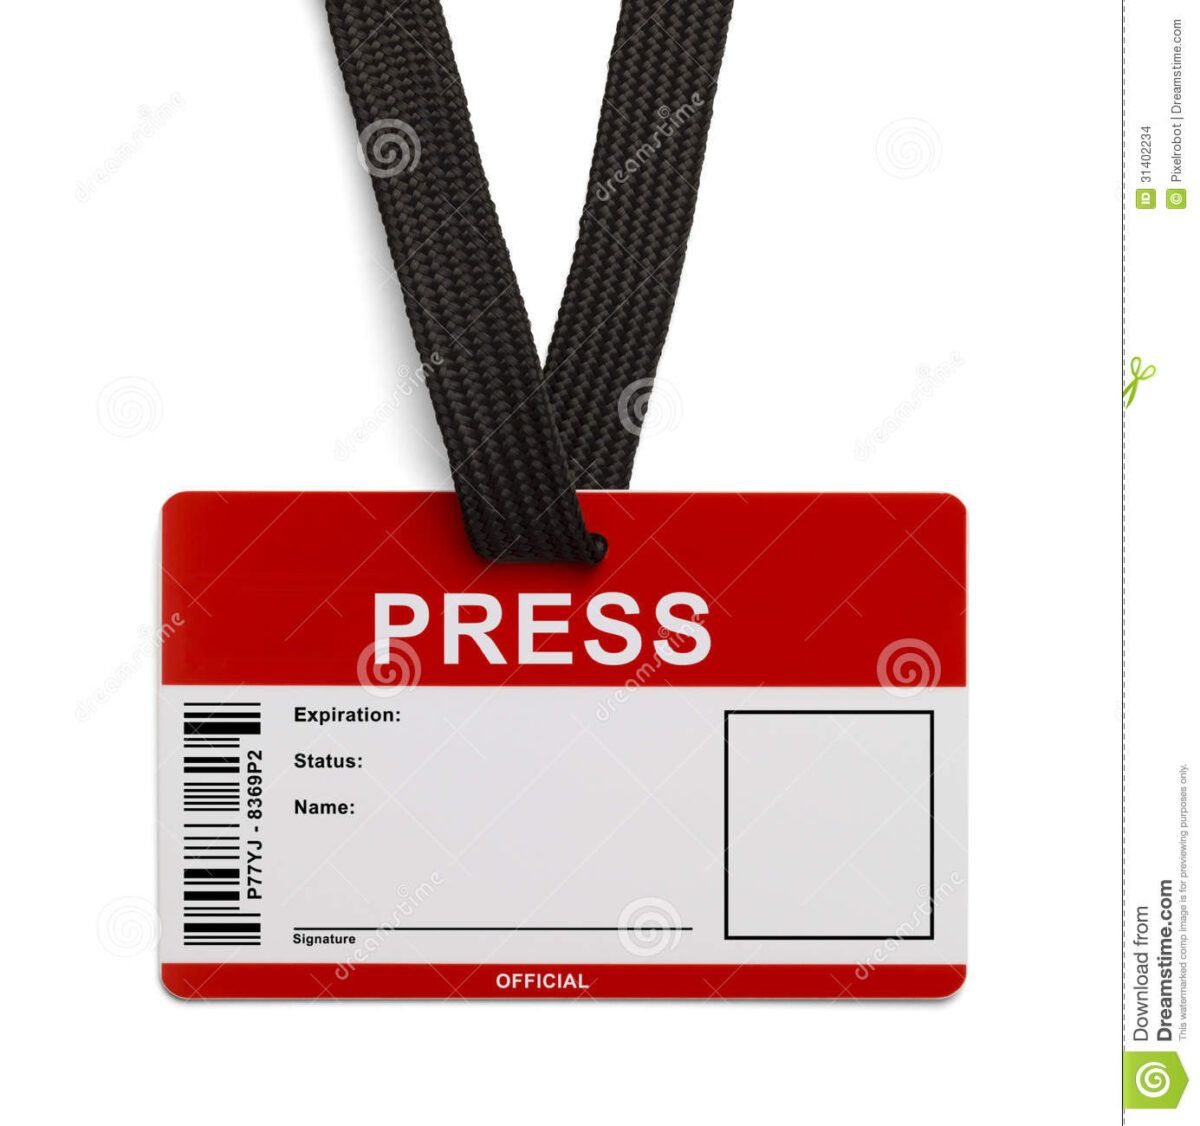 Press Id Card Stock Photo Image Of Label Broadcasting In Media Id Card Templates Id Card Template Card Templates Business Card Template Word